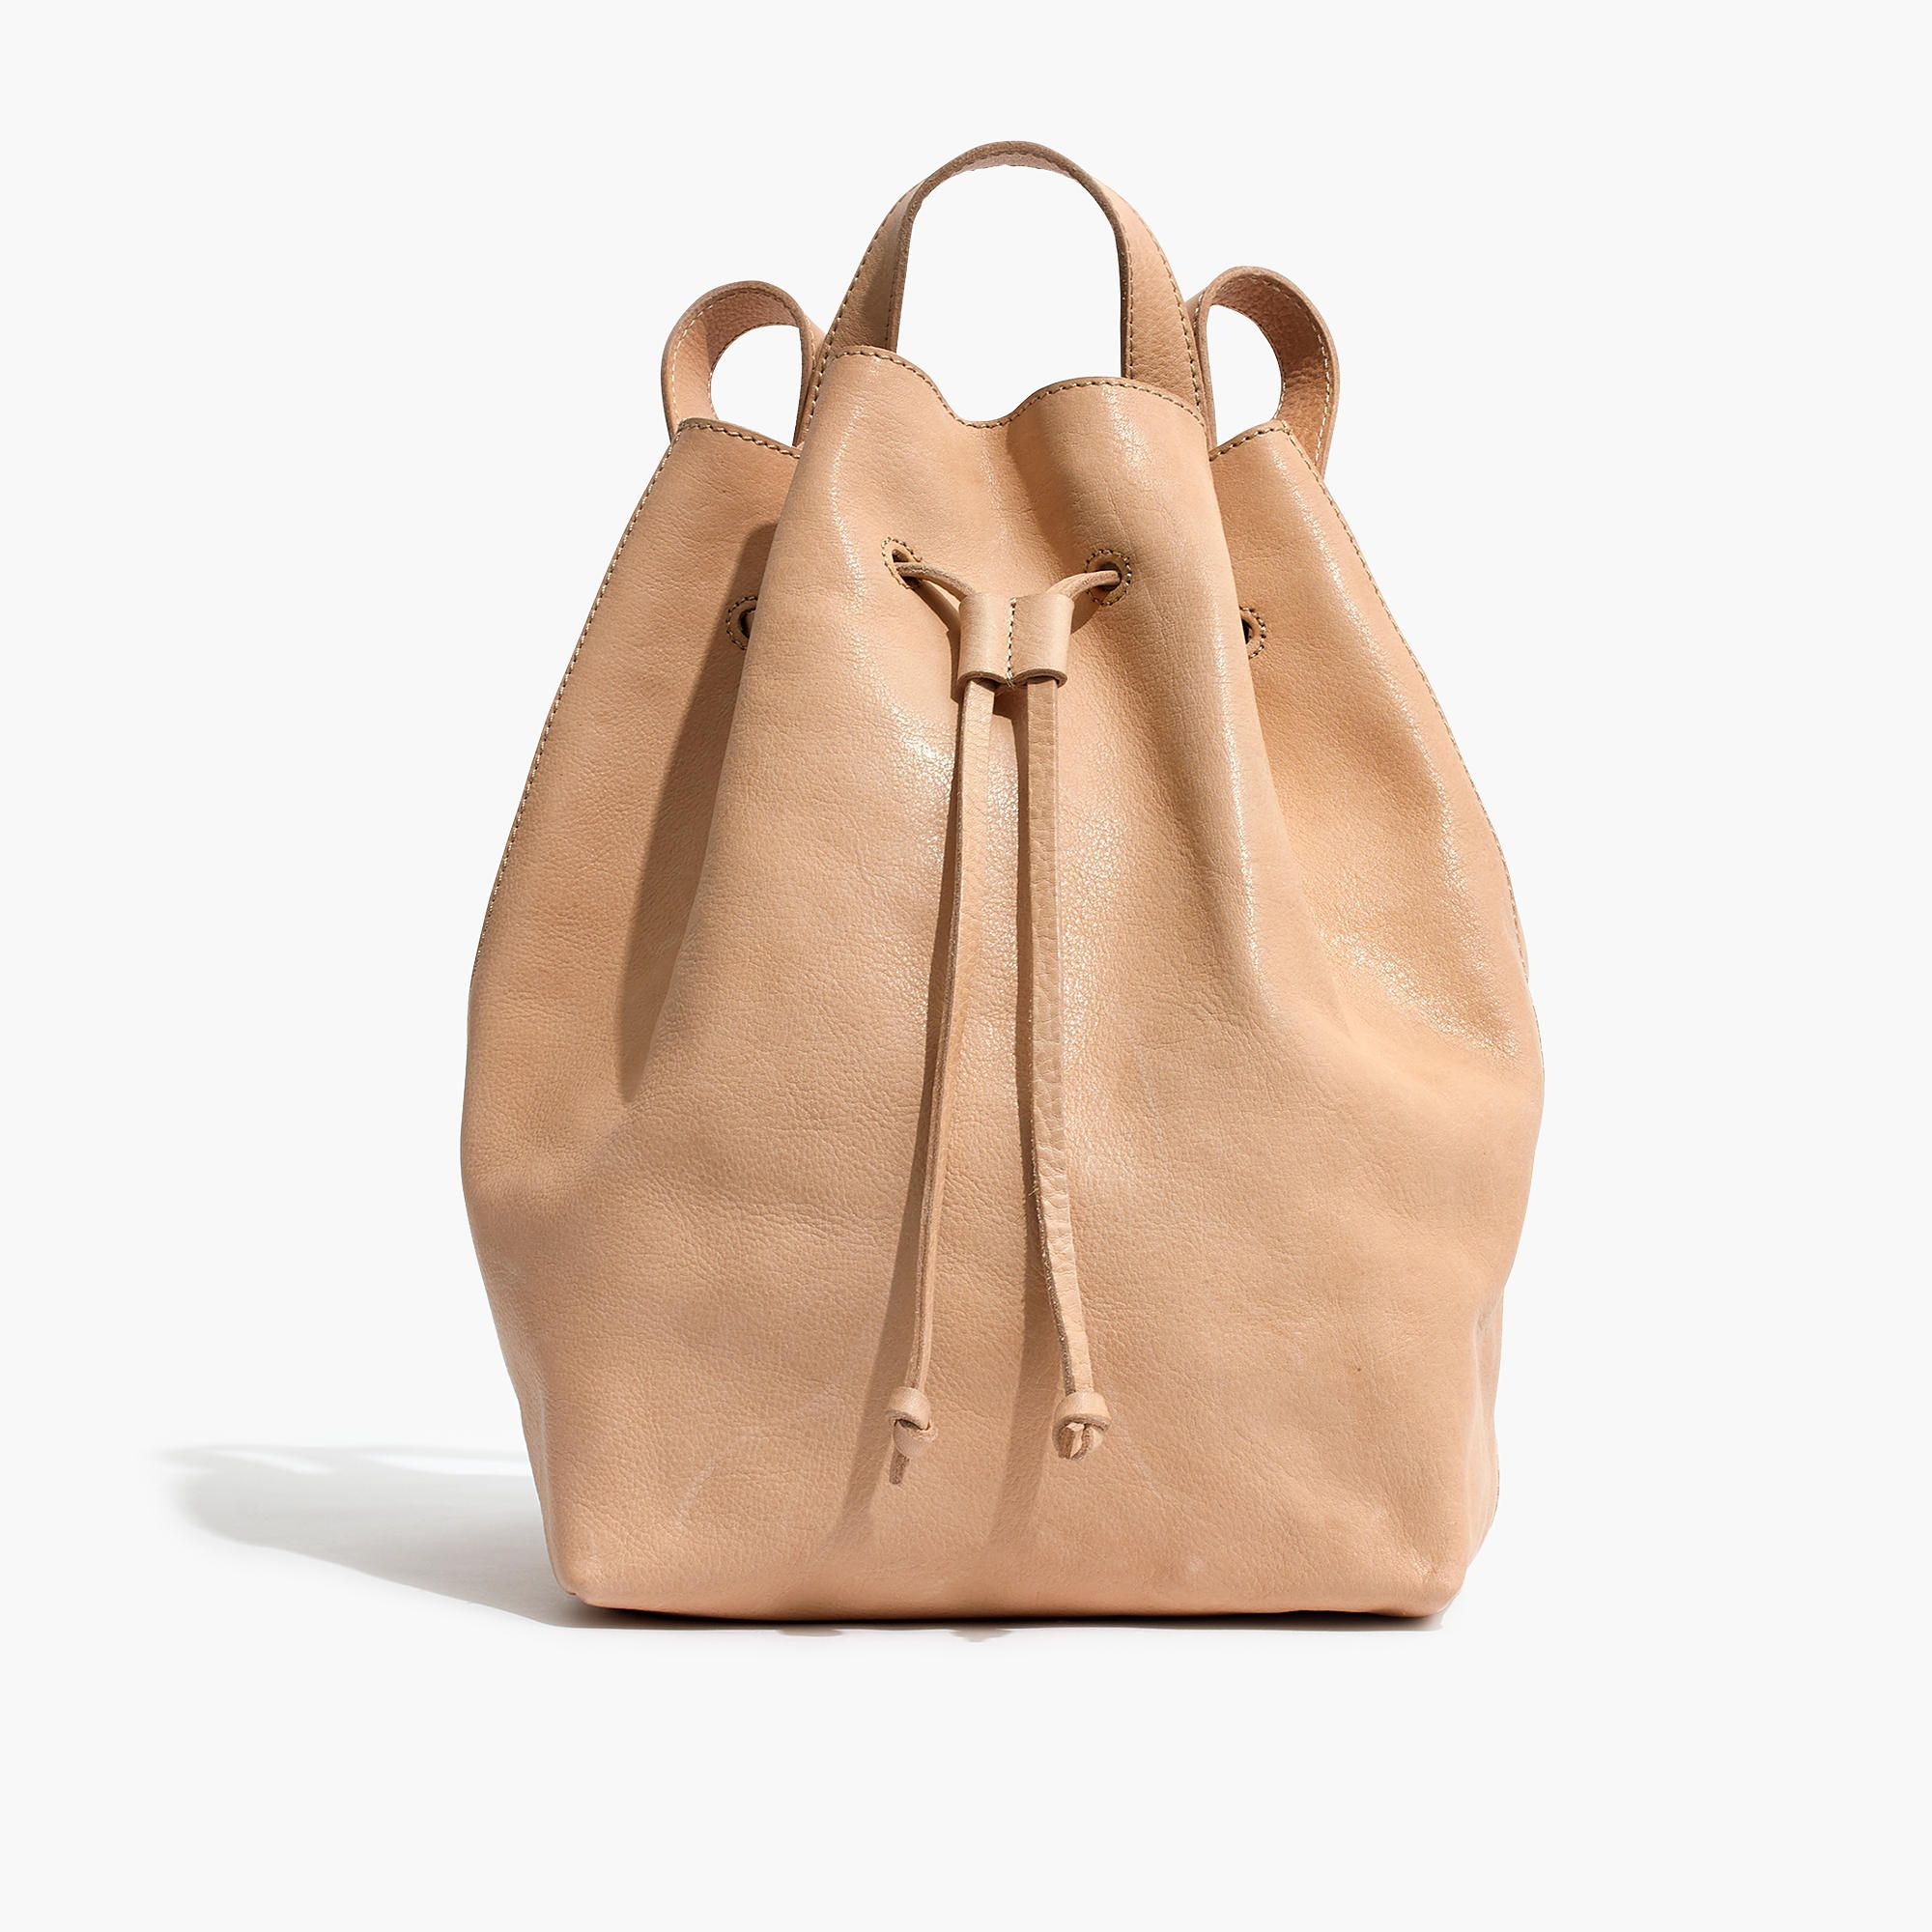 The Somerset Backpack